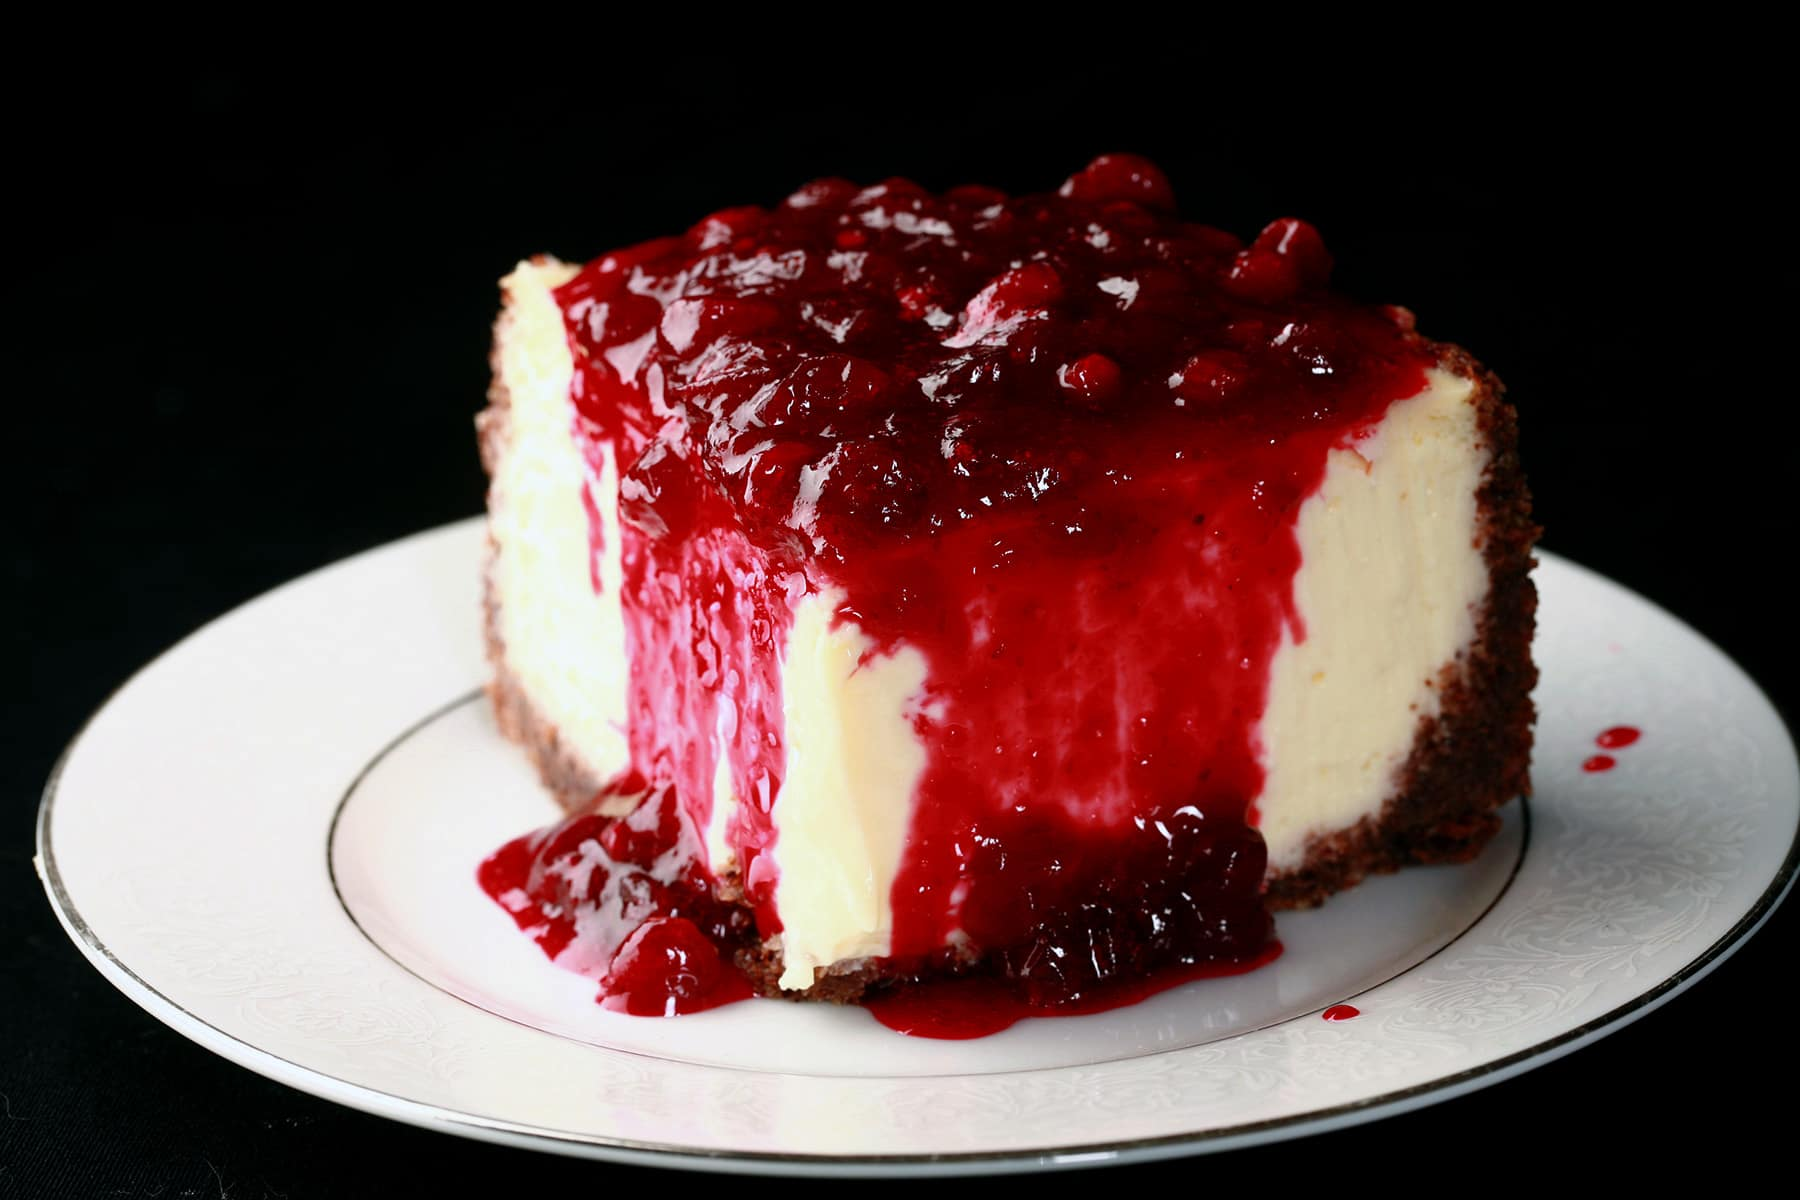 A close up view of a slice of partridgeberry cheesecake.